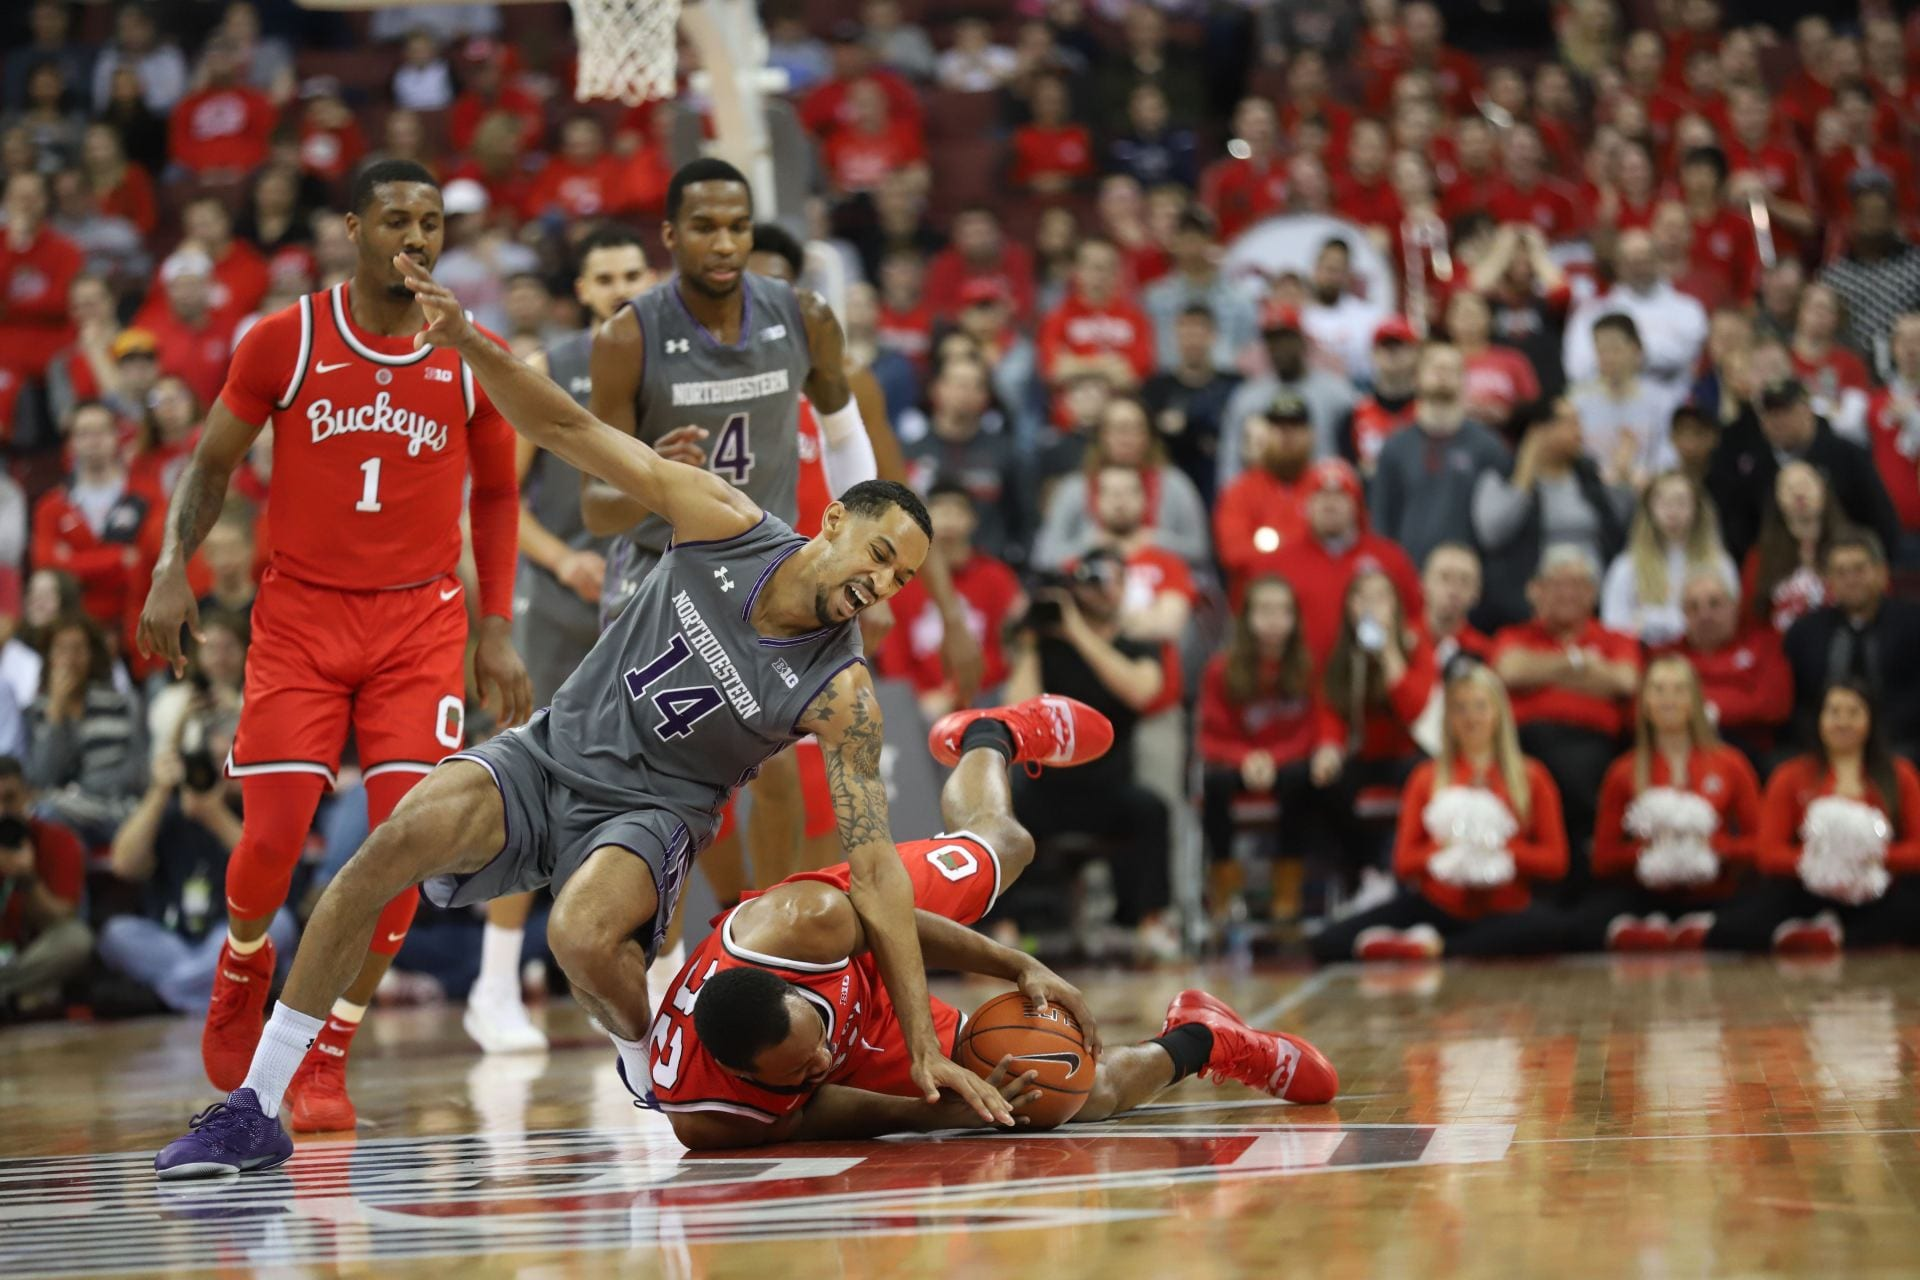 Men's Basketball: Ohio State picks up momentum with 63-49 victory against Northwestern